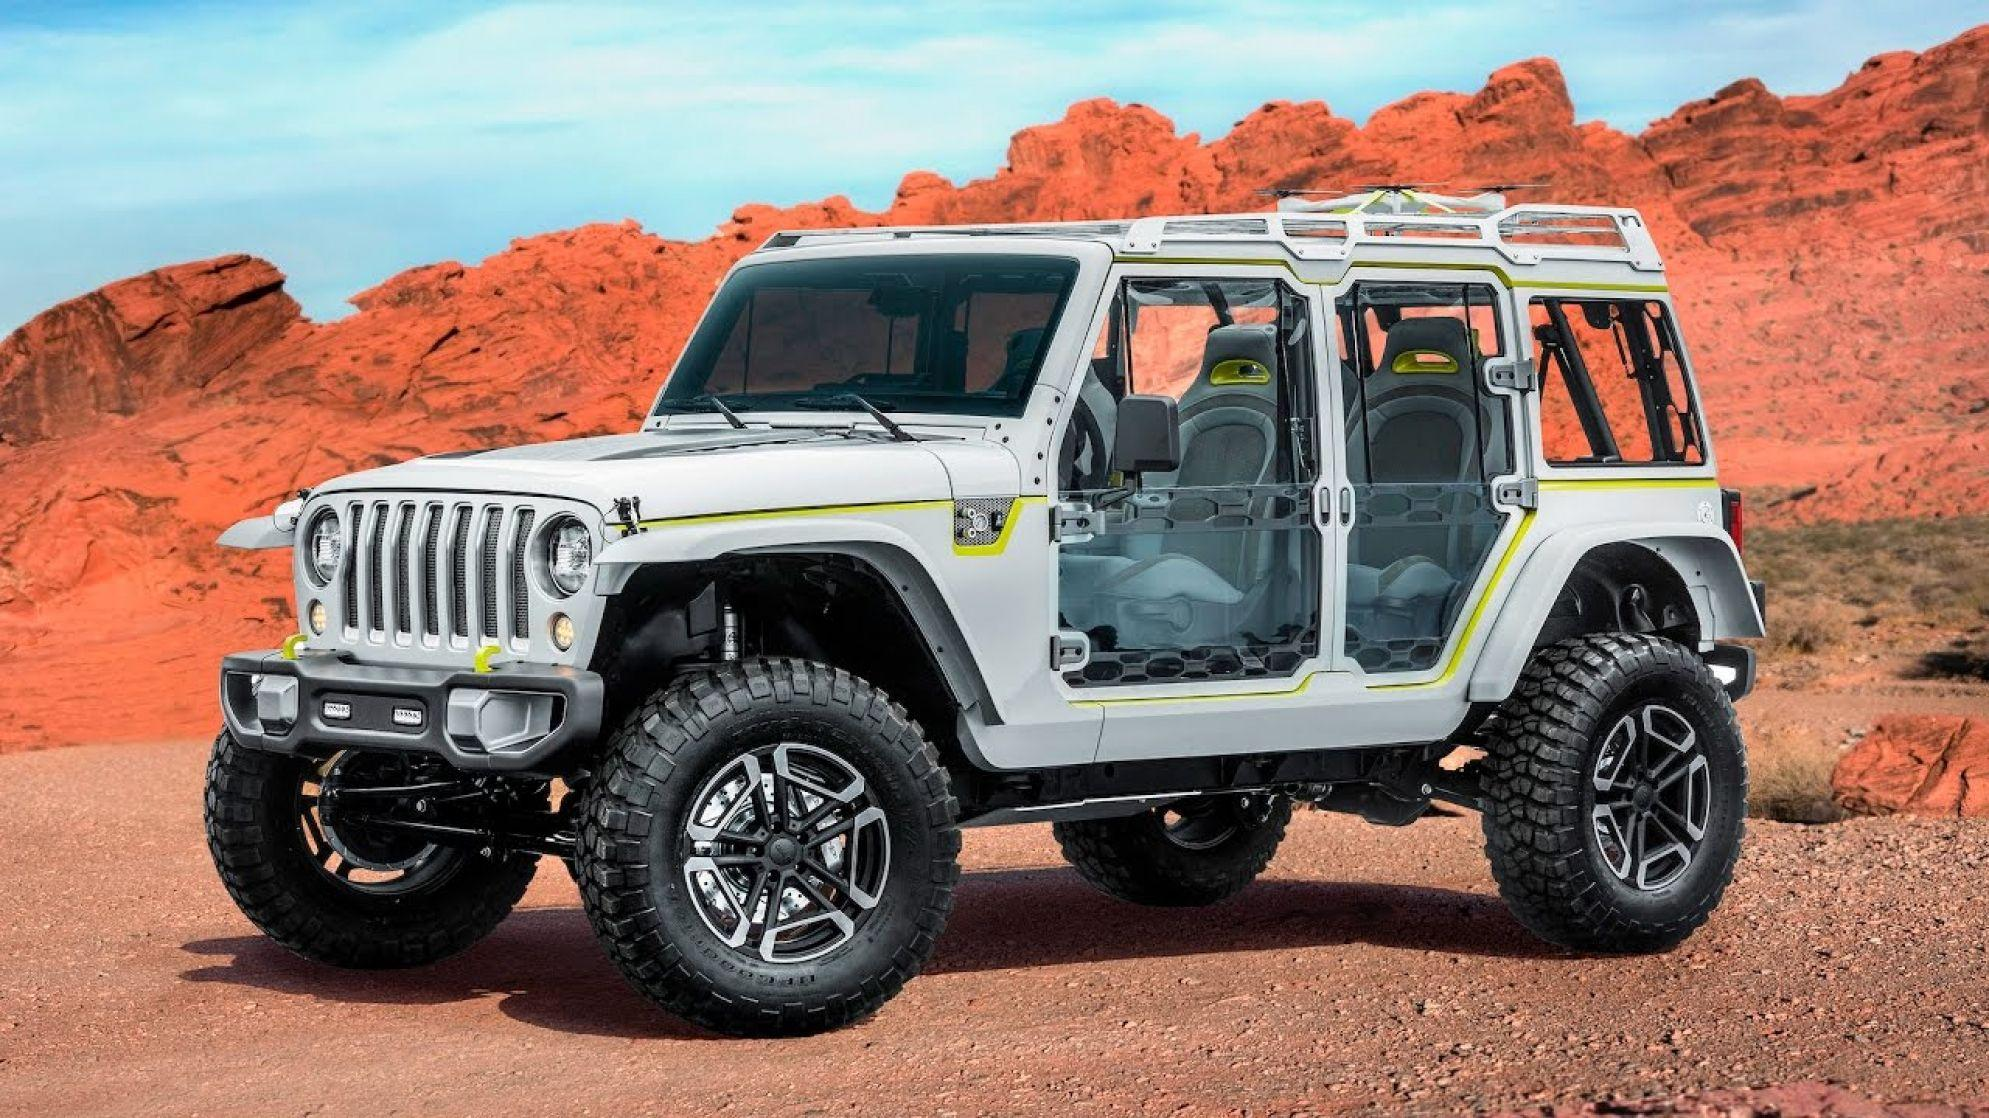 2018 Jeep Wrangler Grille Android Wallpapers